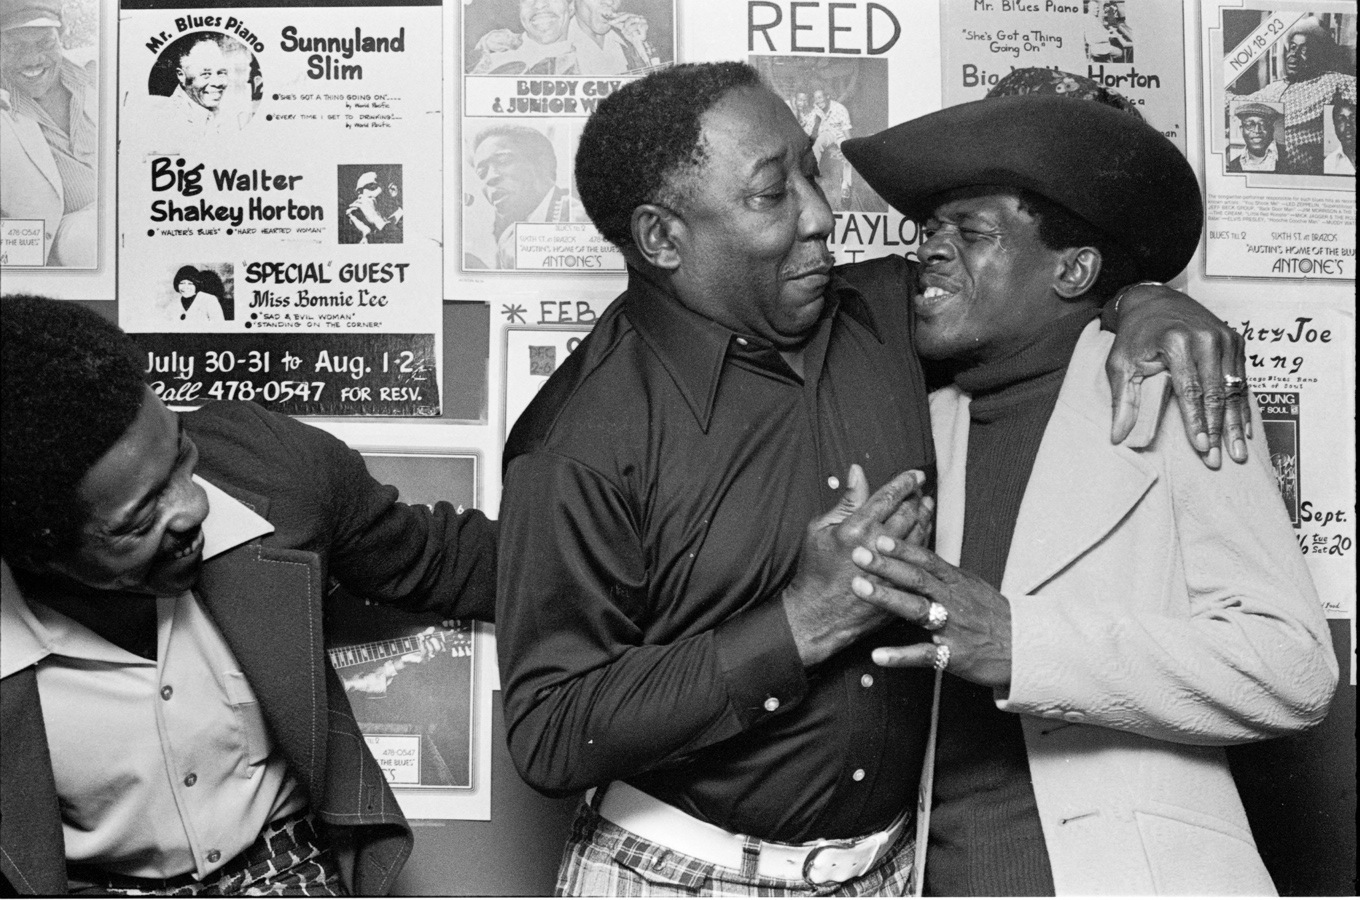 Buddy Guy, the Late Muddy Waters & the Late Jr. Wells (Muddy's B'day).